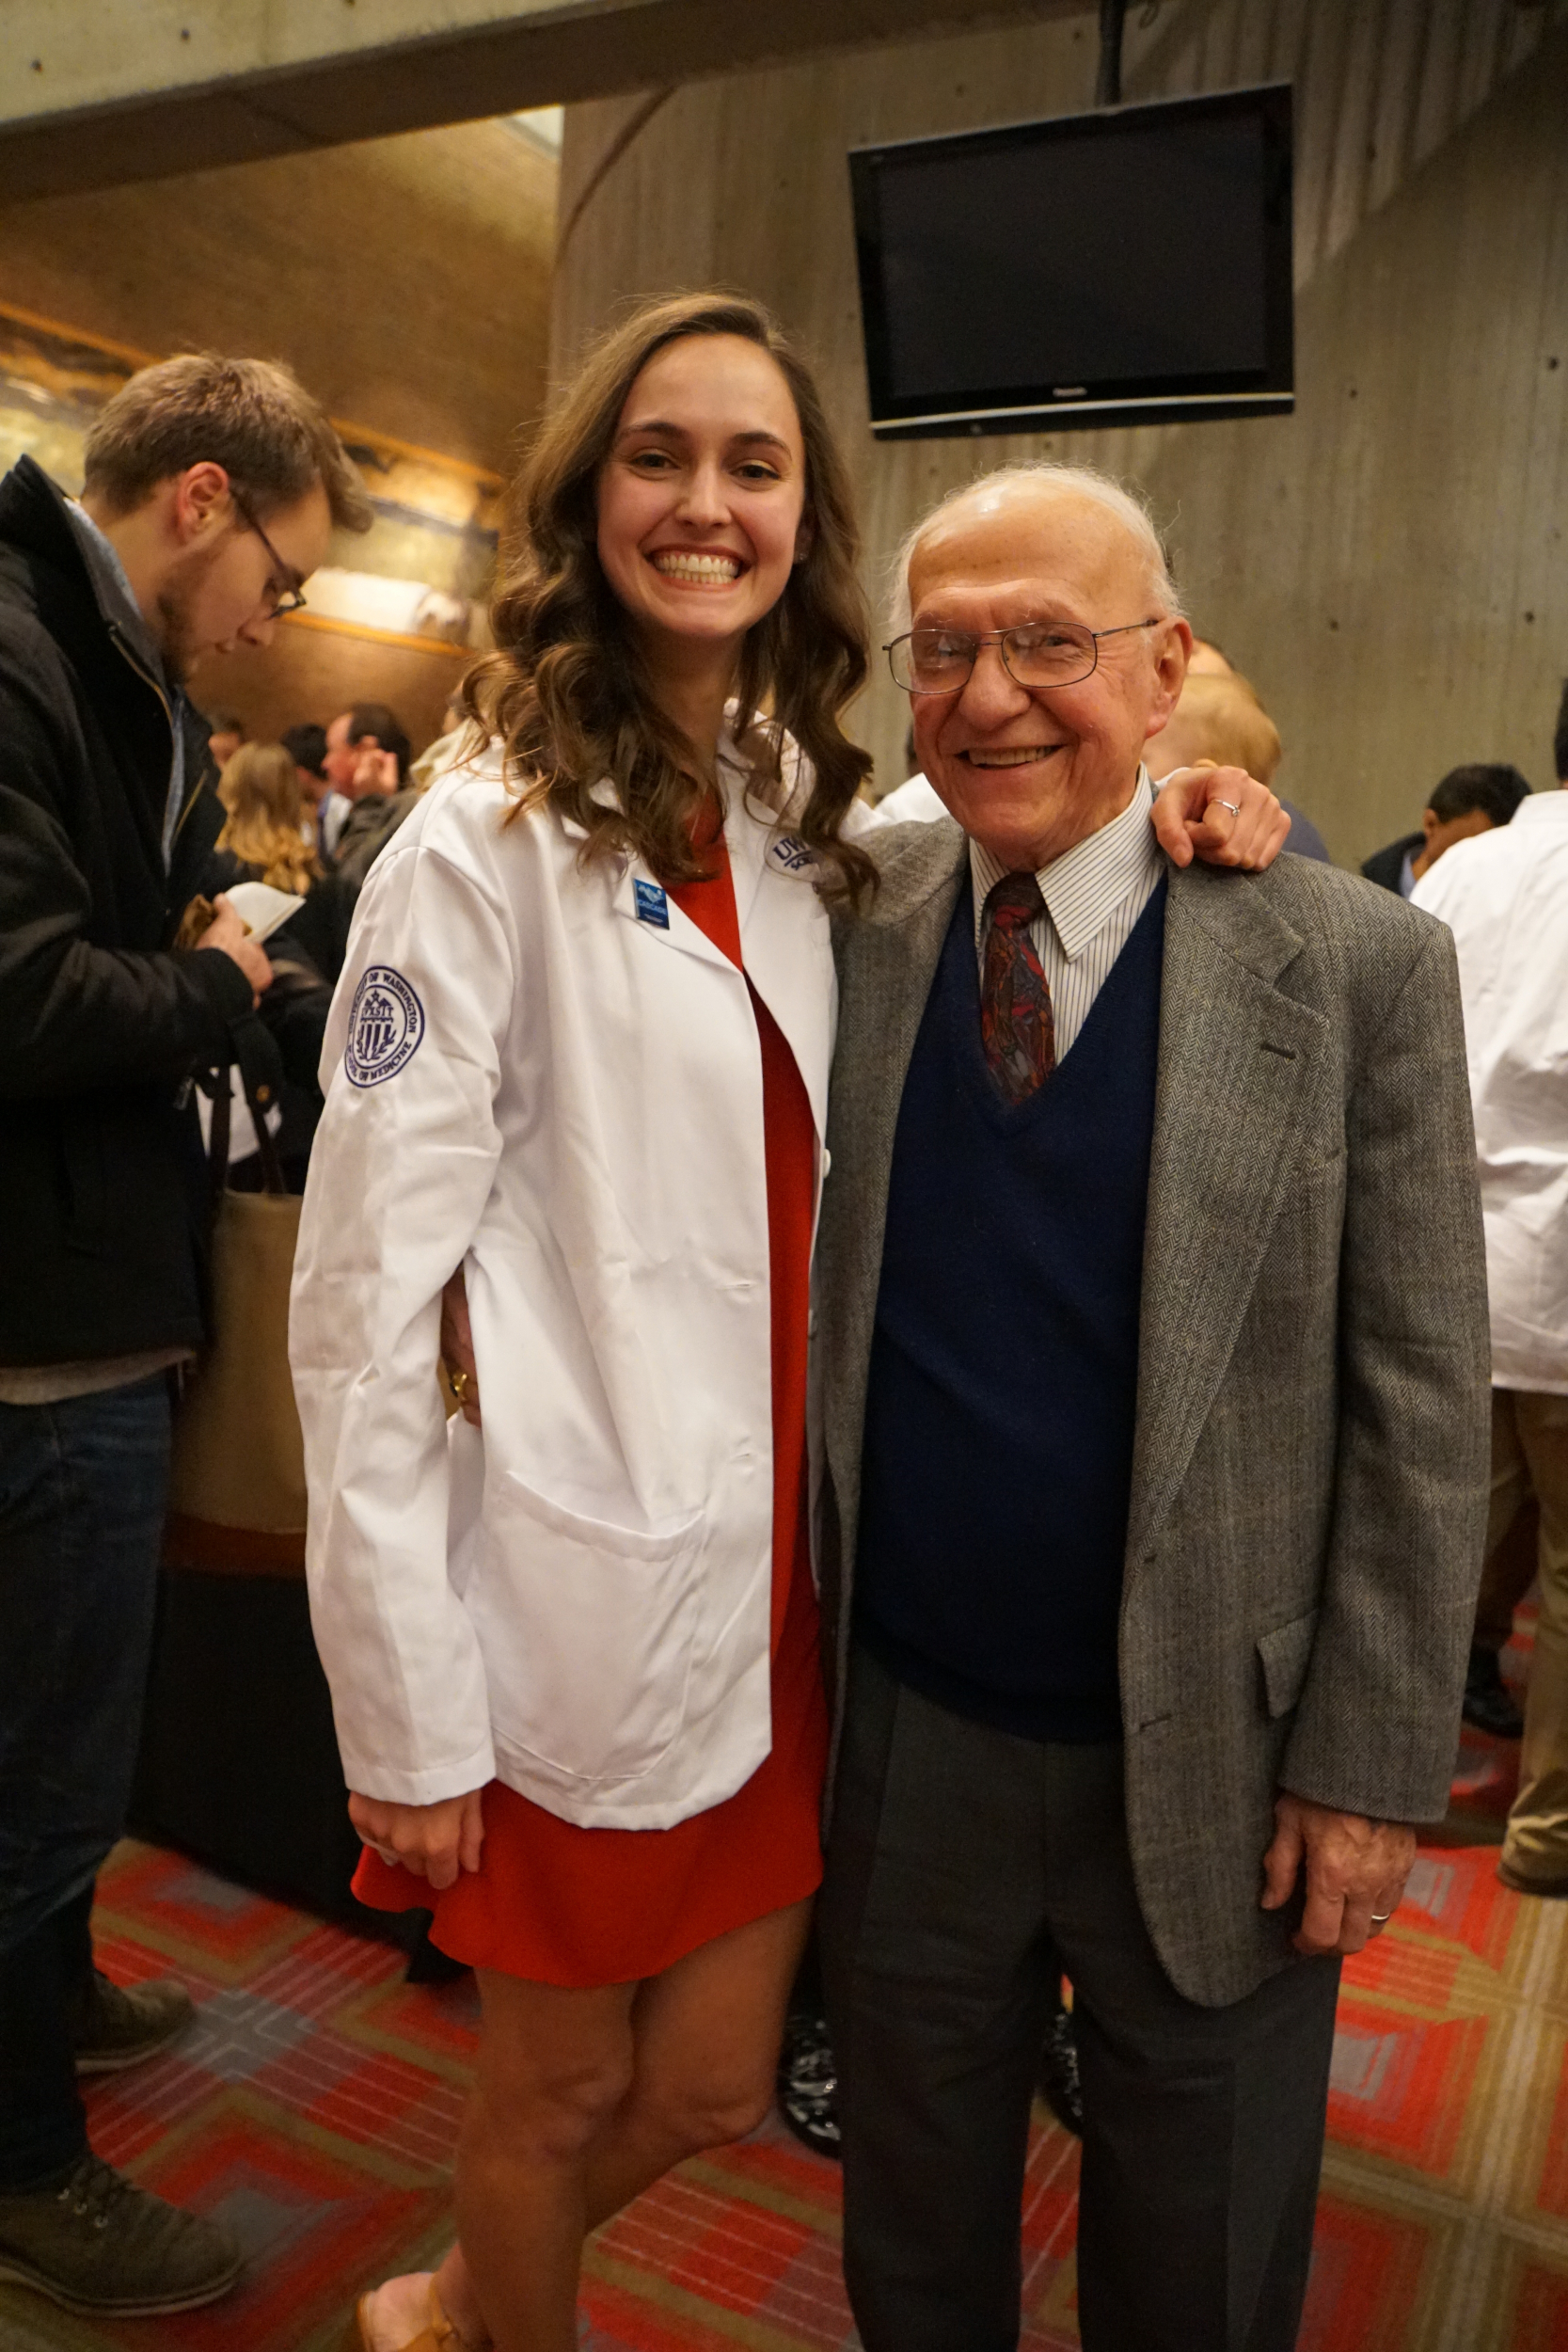 3. Chloe and Grandpa, Dr. and future Dr.